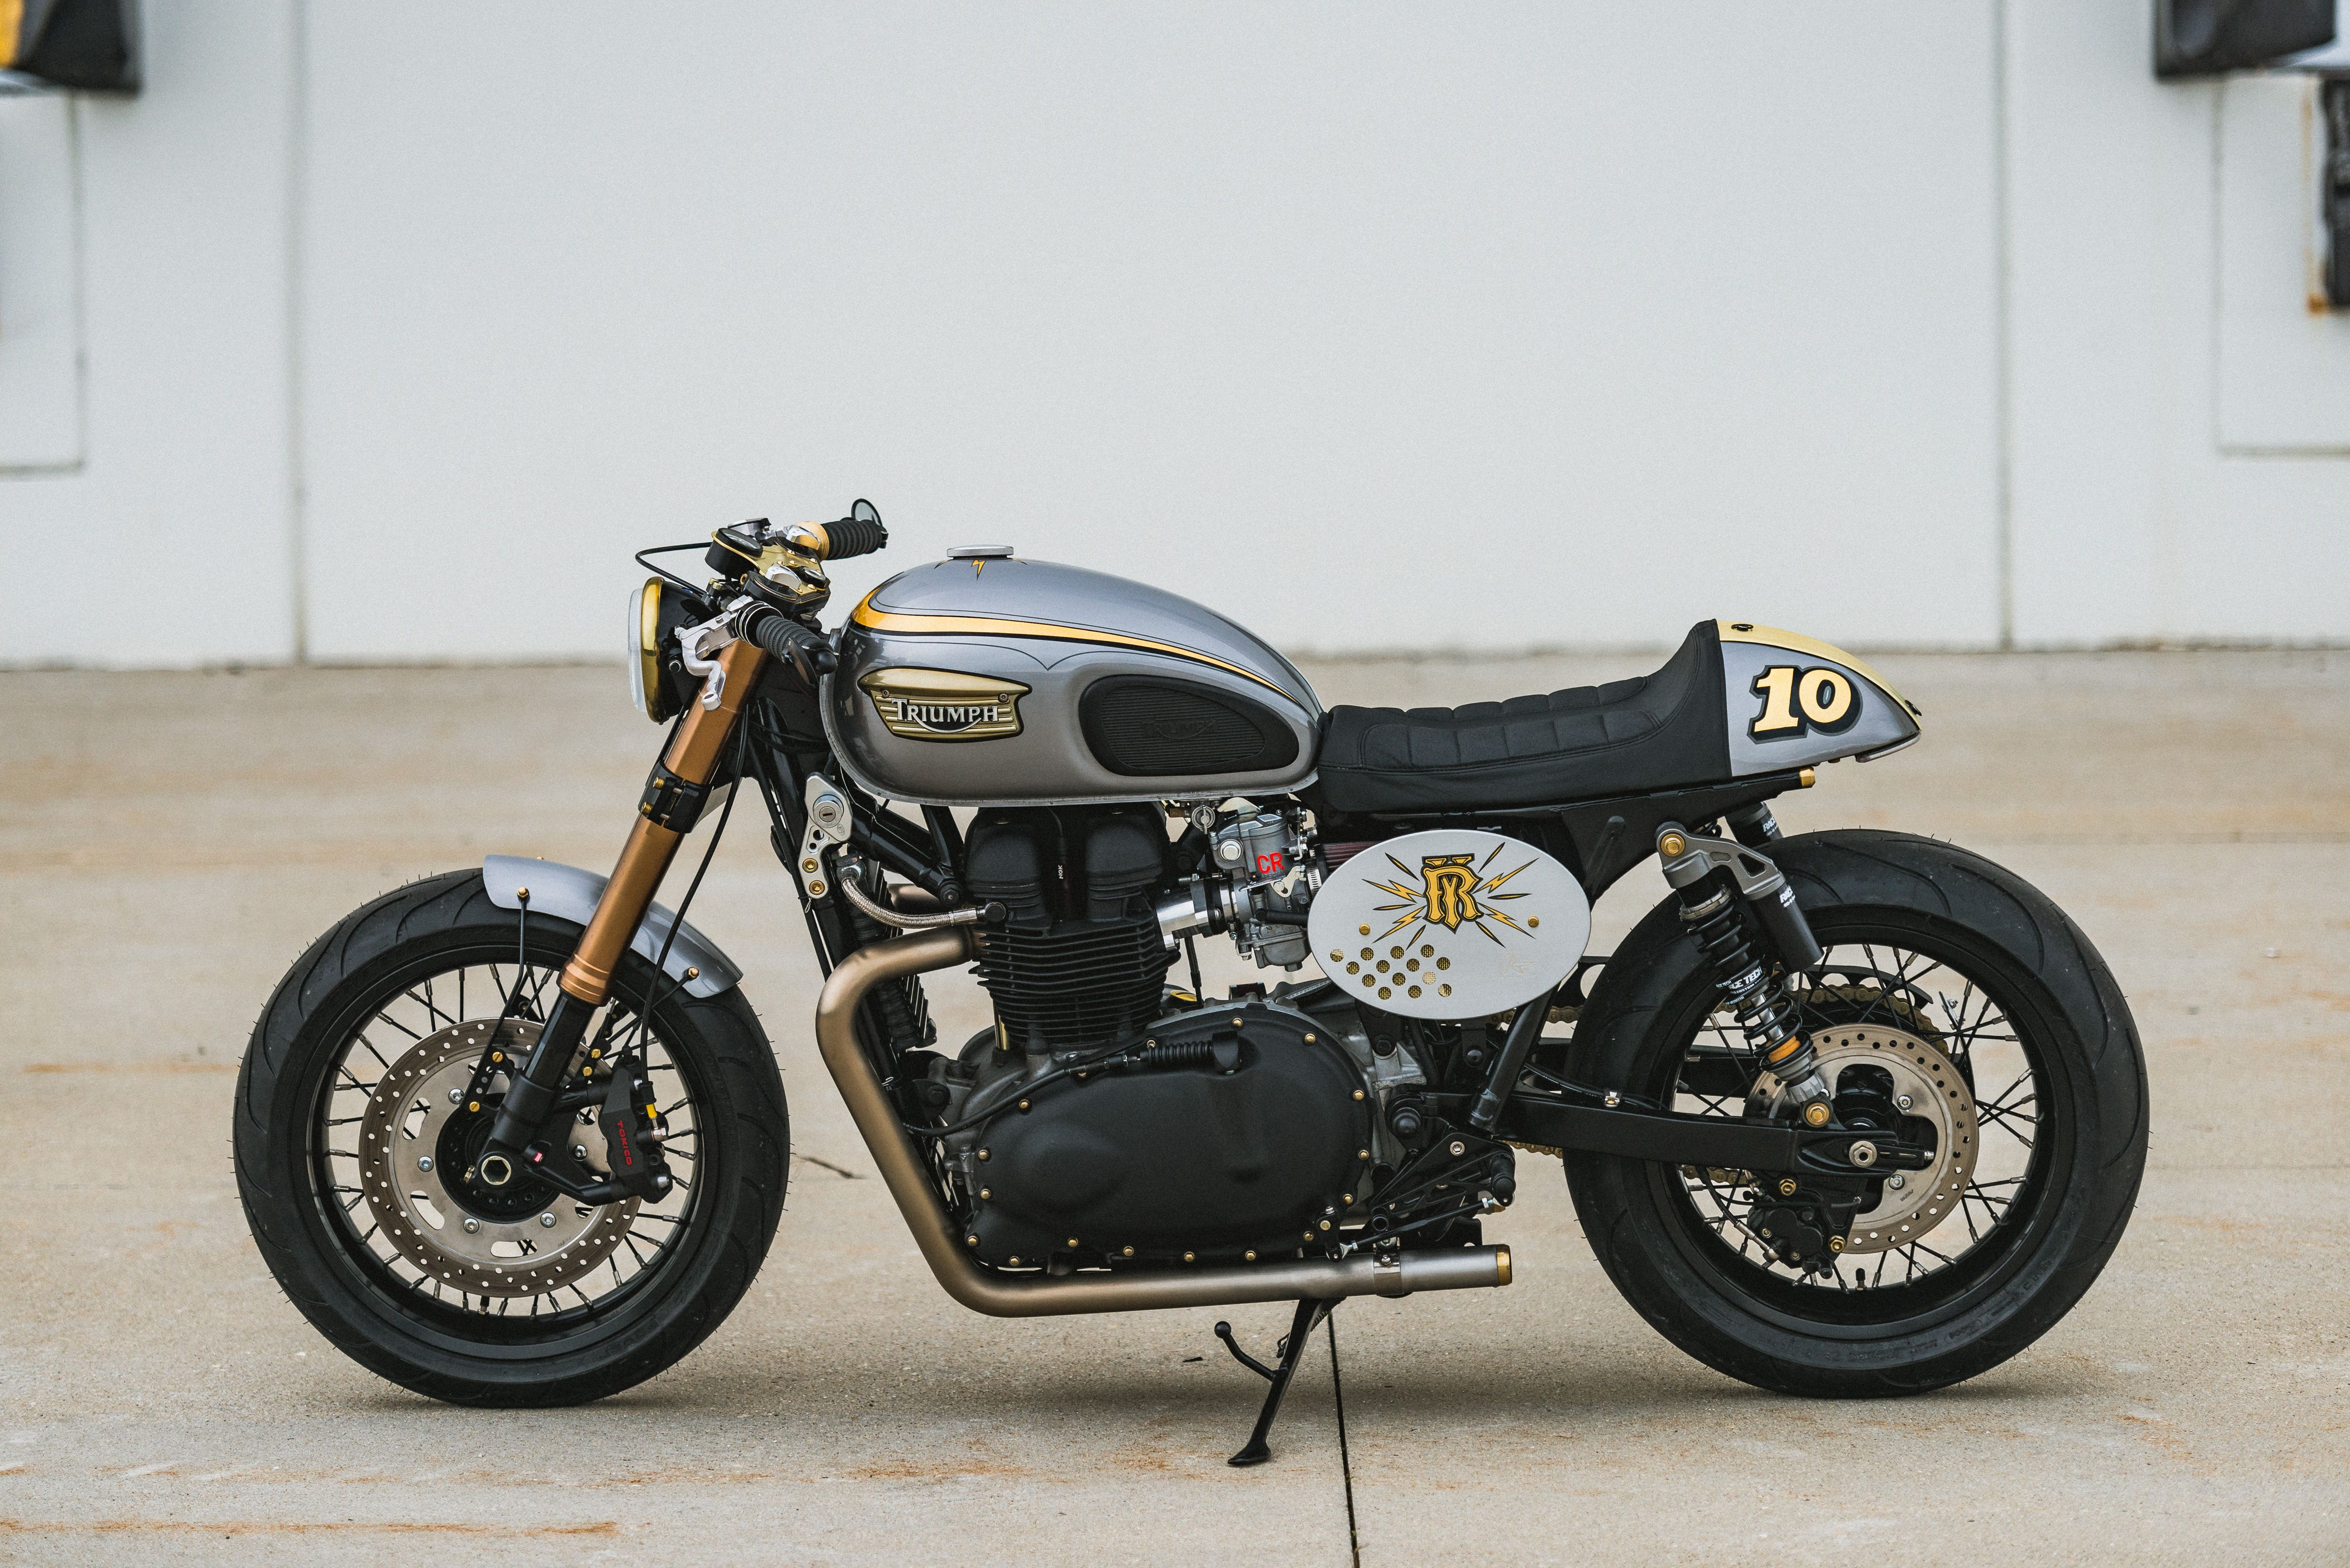 Triumph Cafe Racer >> This Triumph Bonneville Cafe Racer Is Retro Style With Modern